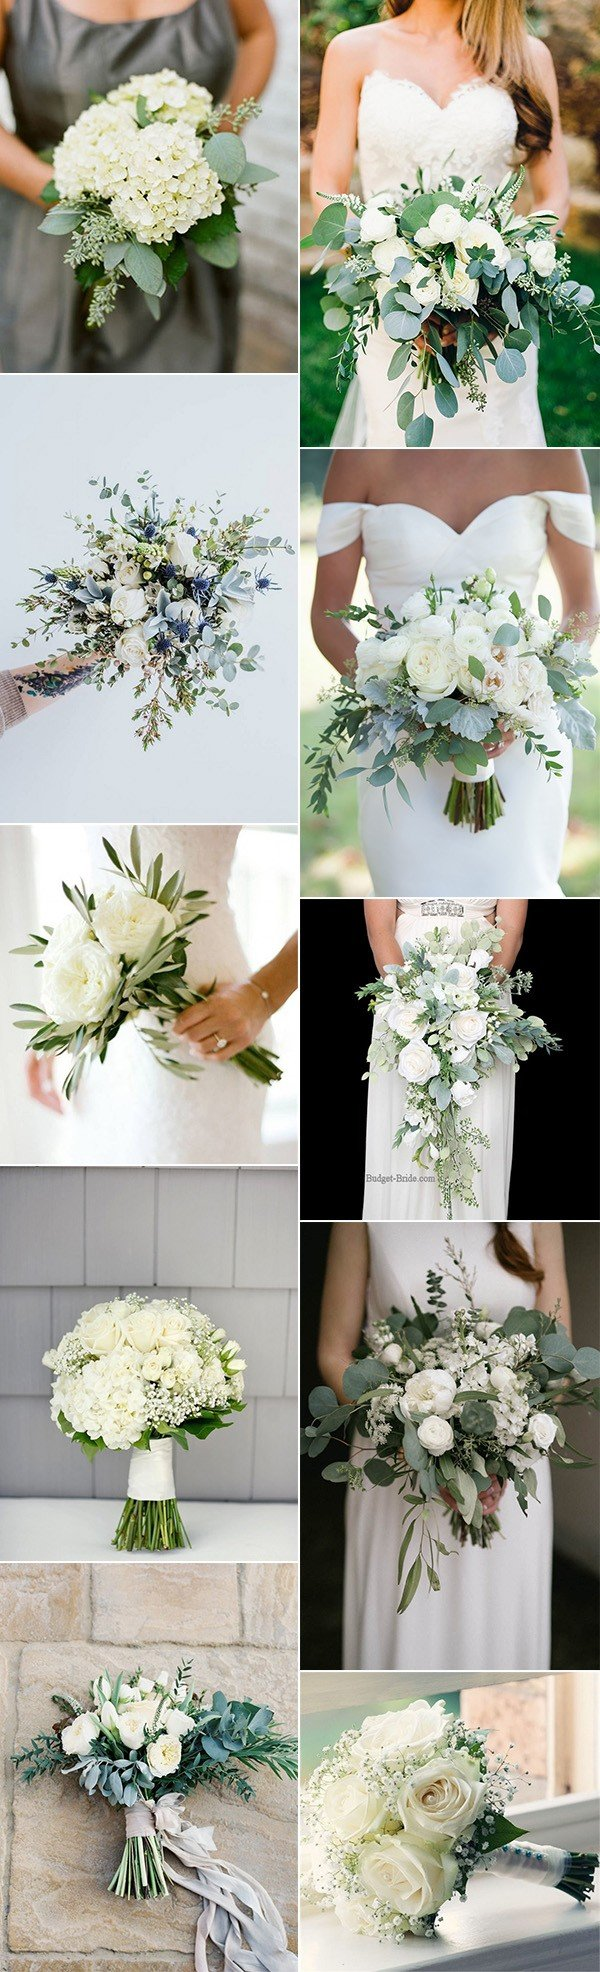 Top 10 white and green wedding bouquet ideas you ll love for Wedding flowers ideas pictures